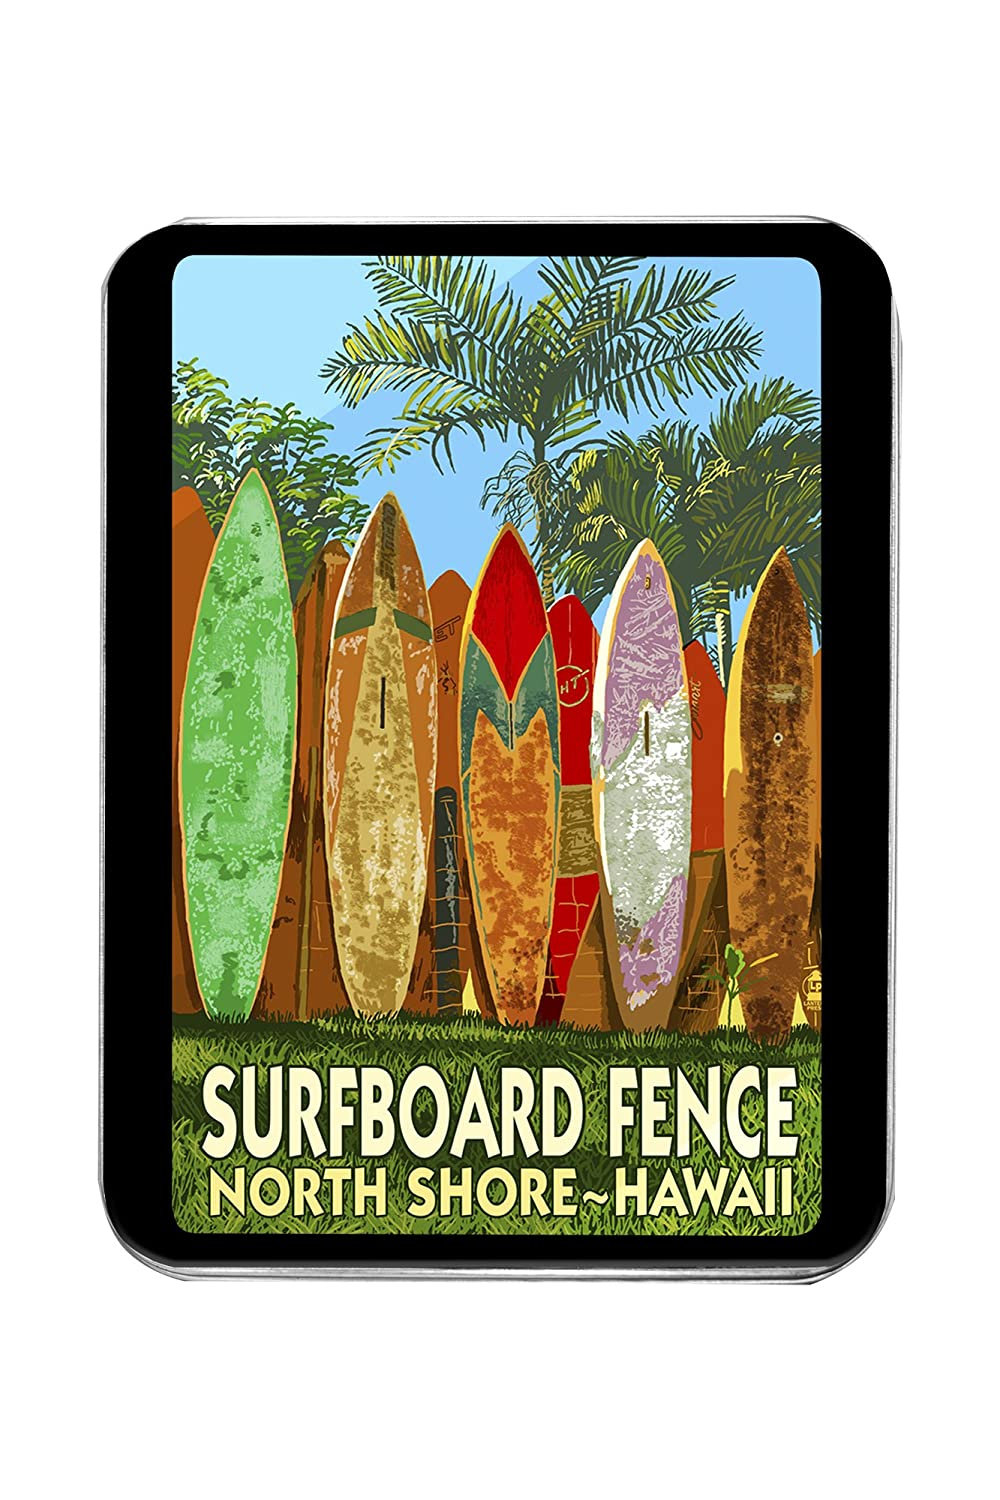 North Shore, Hawaii - Tabla de surf diseño de valla (lata): Amazon.es: Hogar